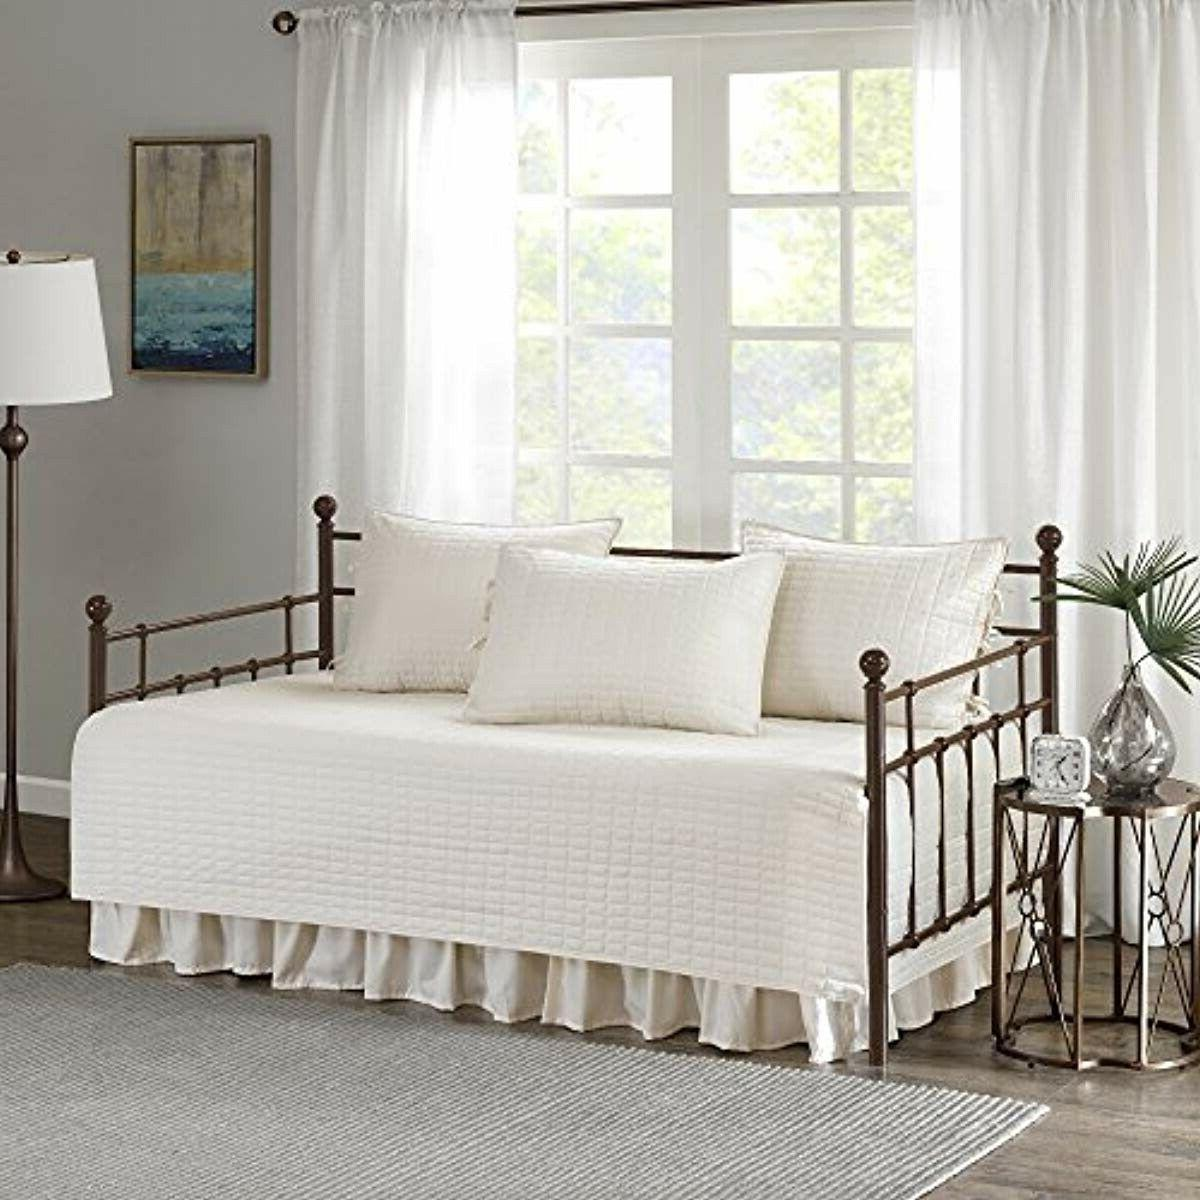 Comfort - Daybed Set - Quilt Pattern - 5 Pieces